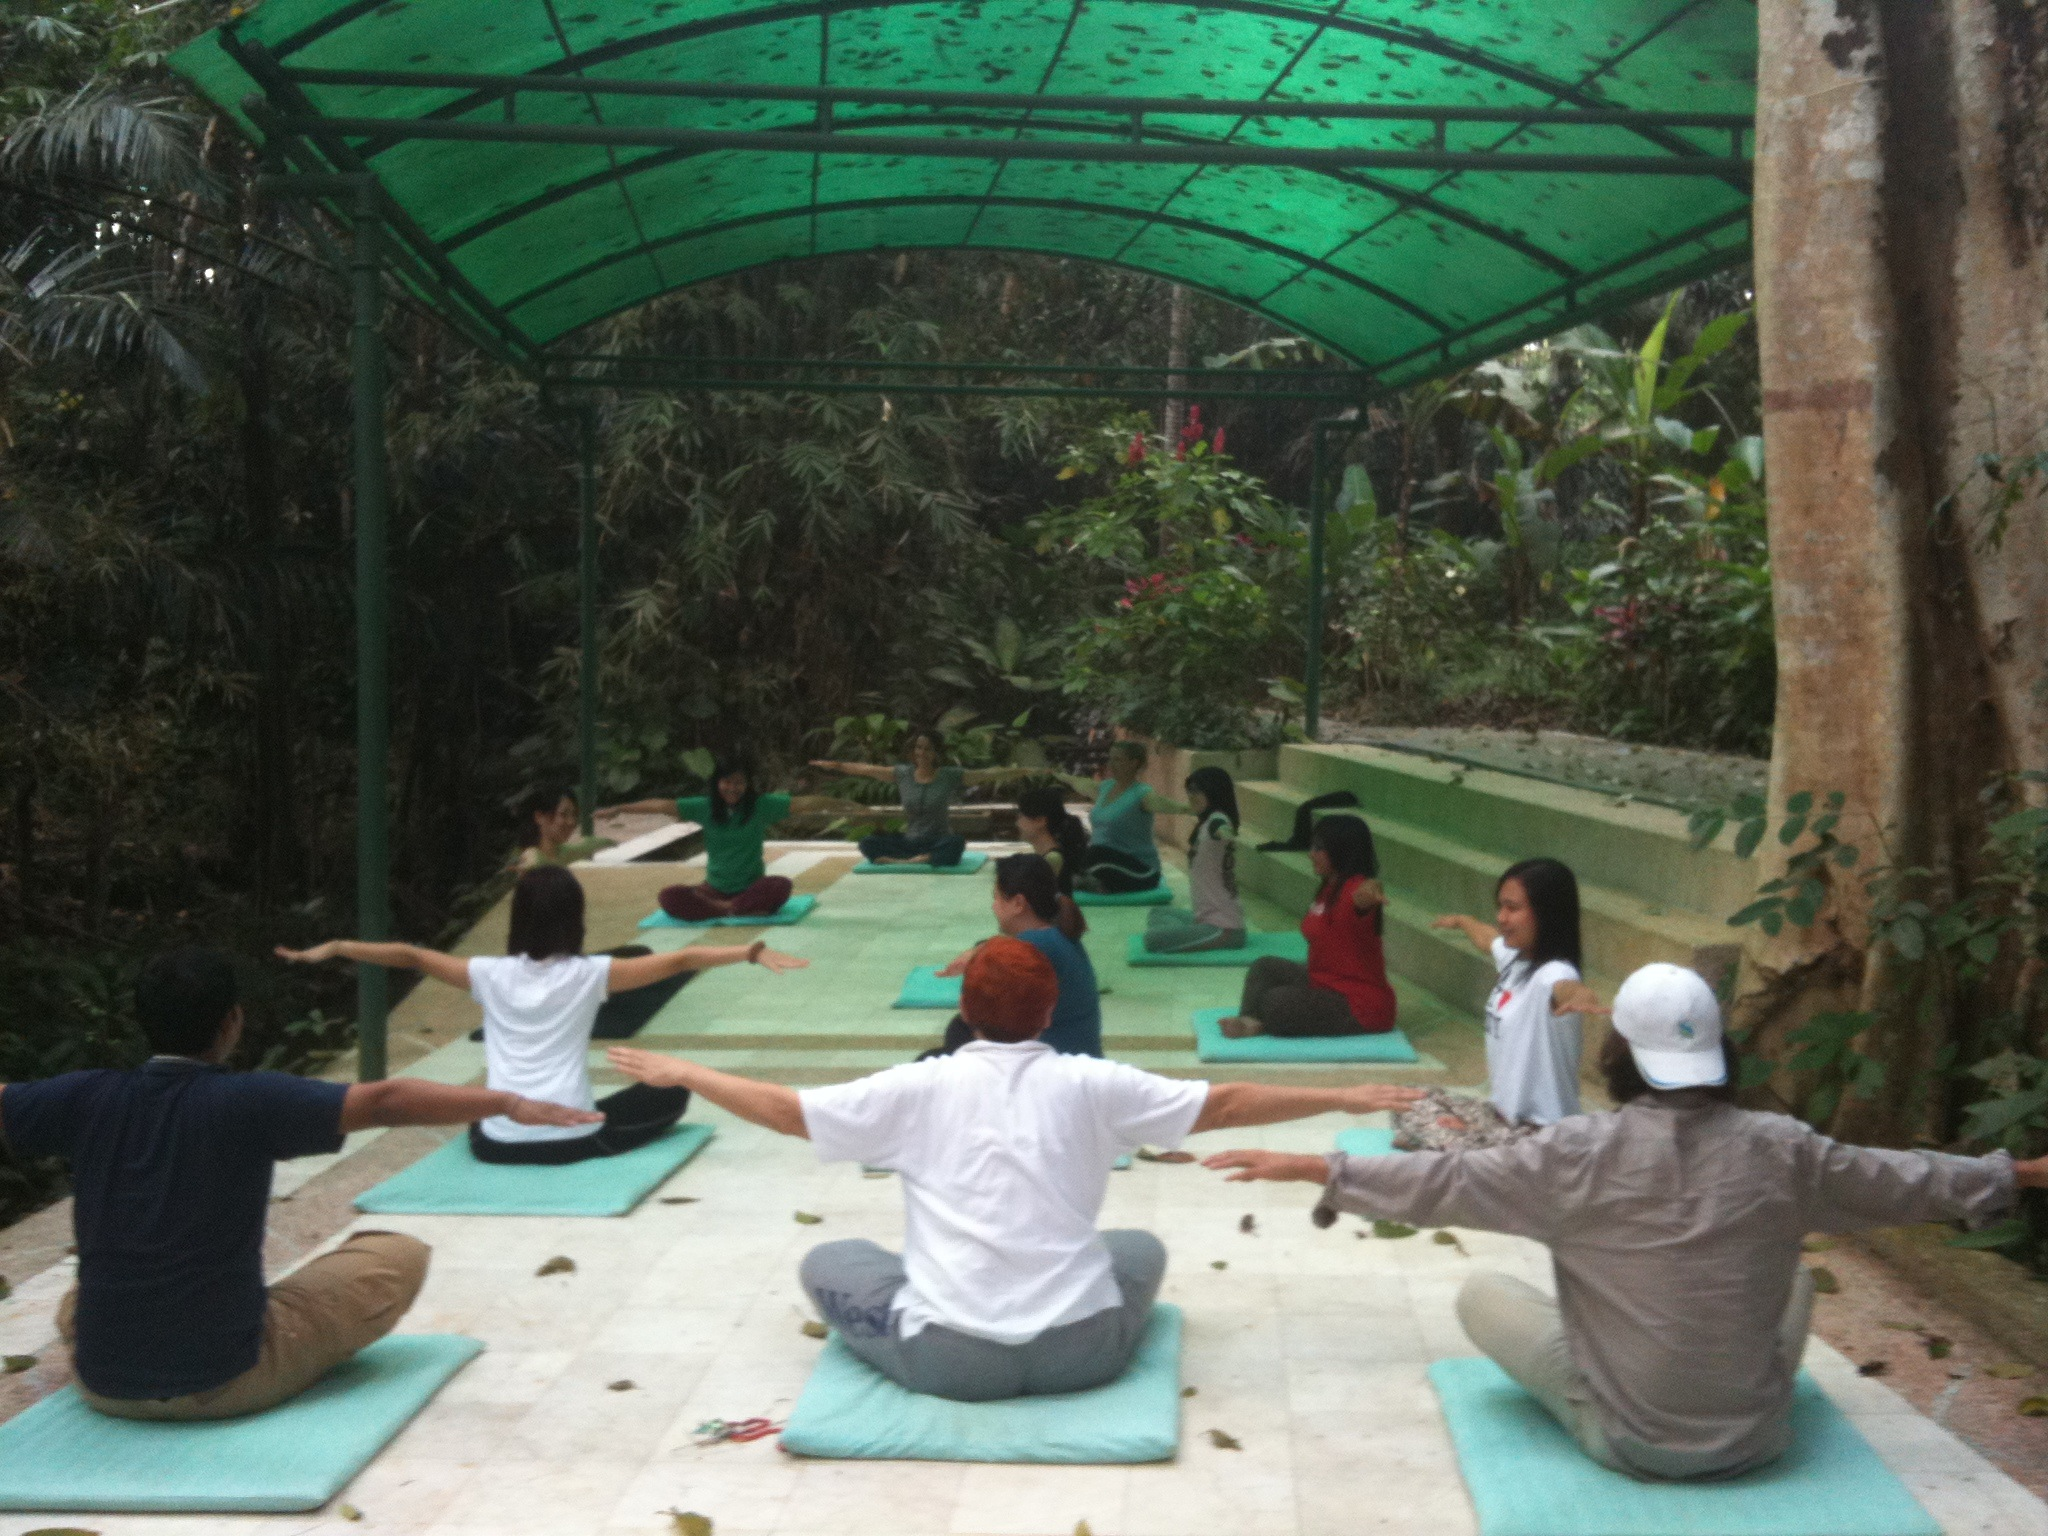 Yoga class at Jiwa Damai